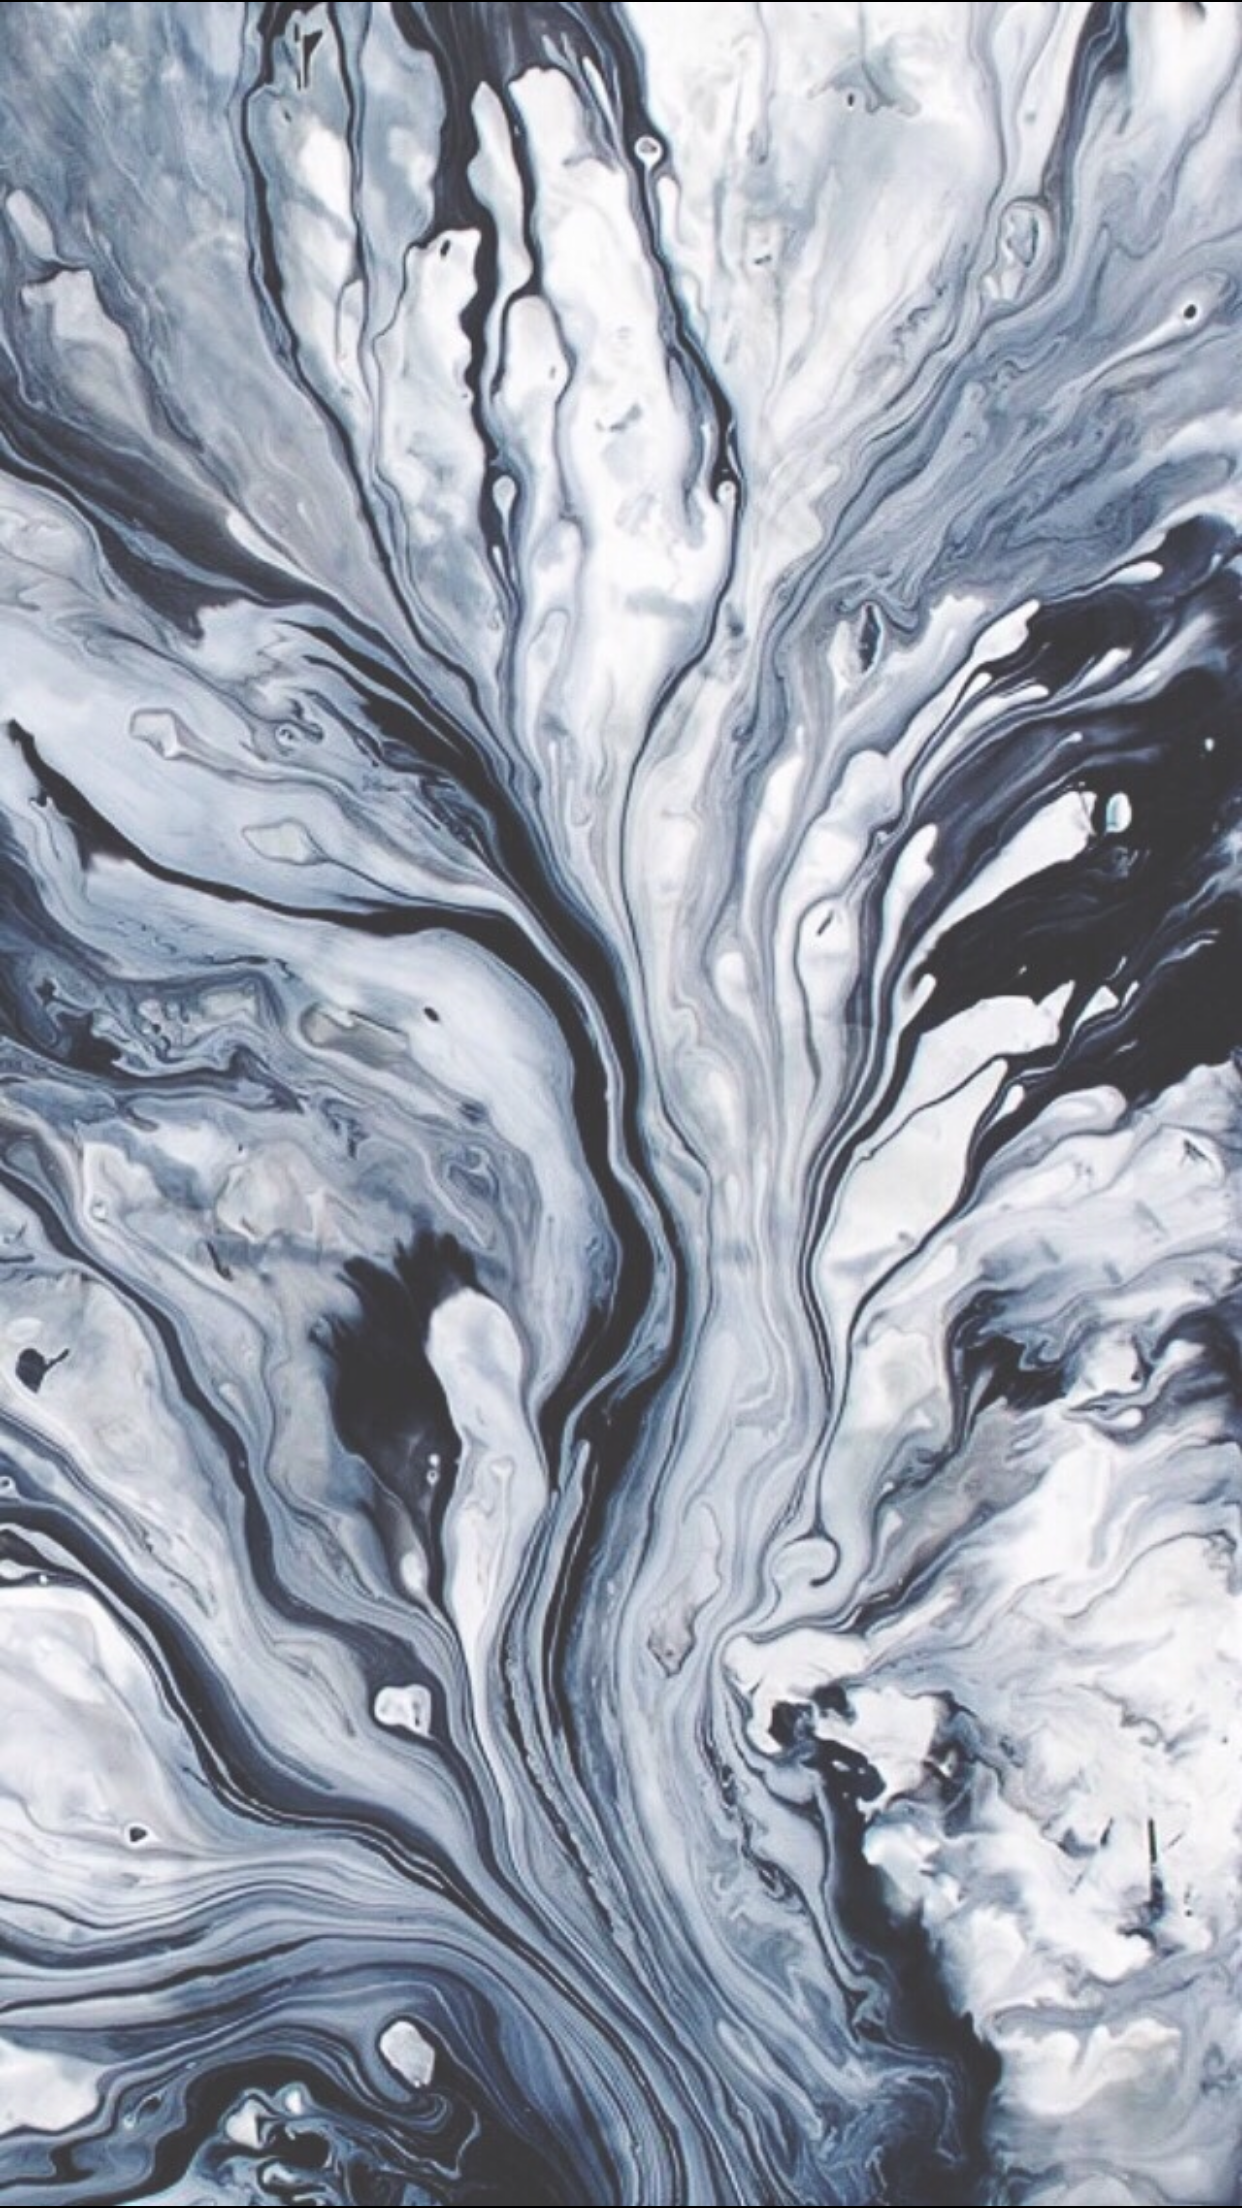 Tumblr iphone wallpaper grunge - Grunge Art Marble Paint Iphone Wallpaper Phone Ipad Wallpapers Pinterest Grunge Art Marble Painting And Grunge